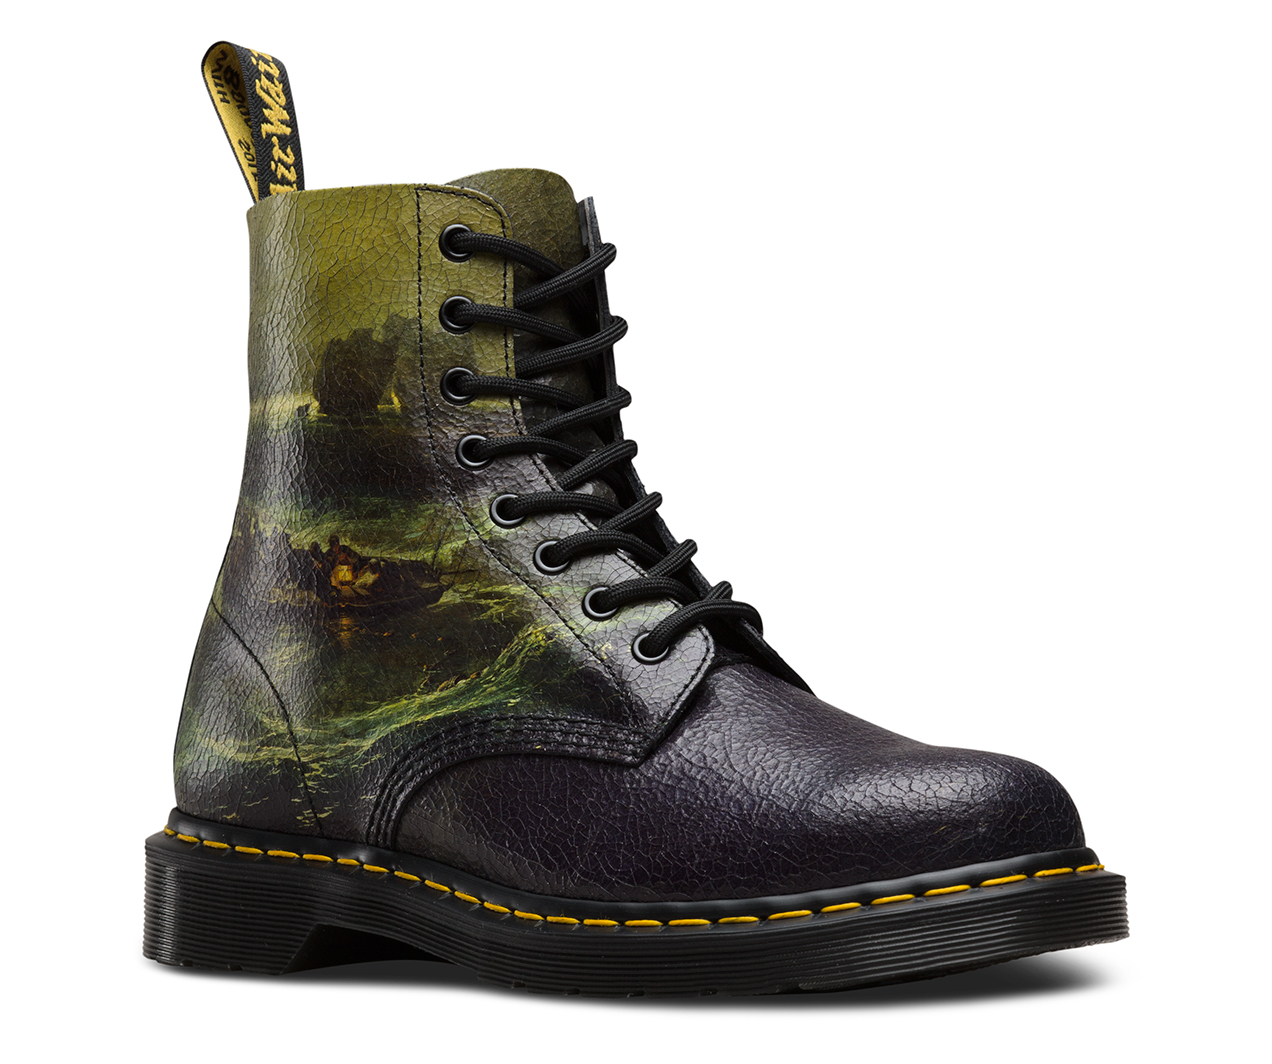 JMW TURNER FISHERMAN 1460 PASCAL | Women's Boots | Official Dr. Martens  Store - UK